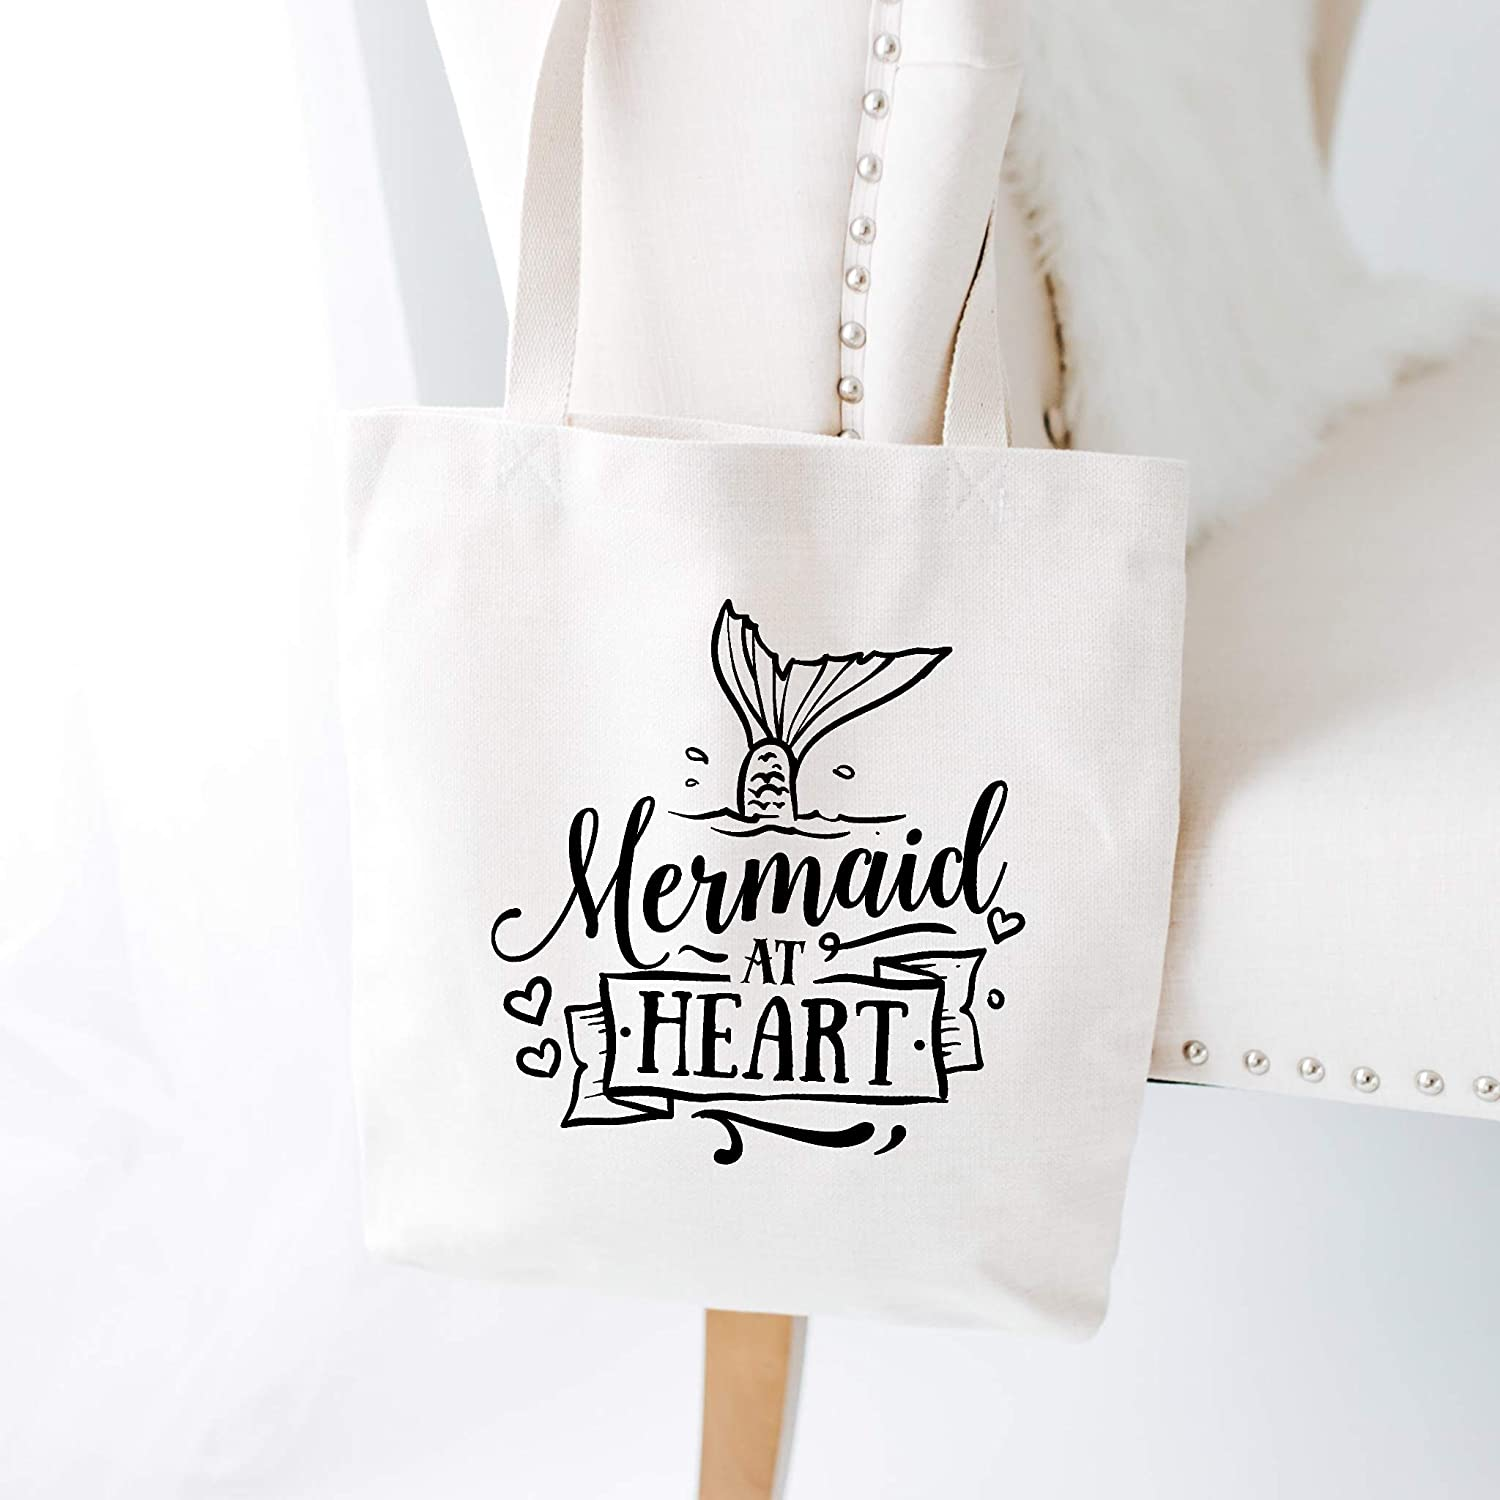 Mermaid at Heart Beach Tote Bag New Free Shipping Easy-to-use